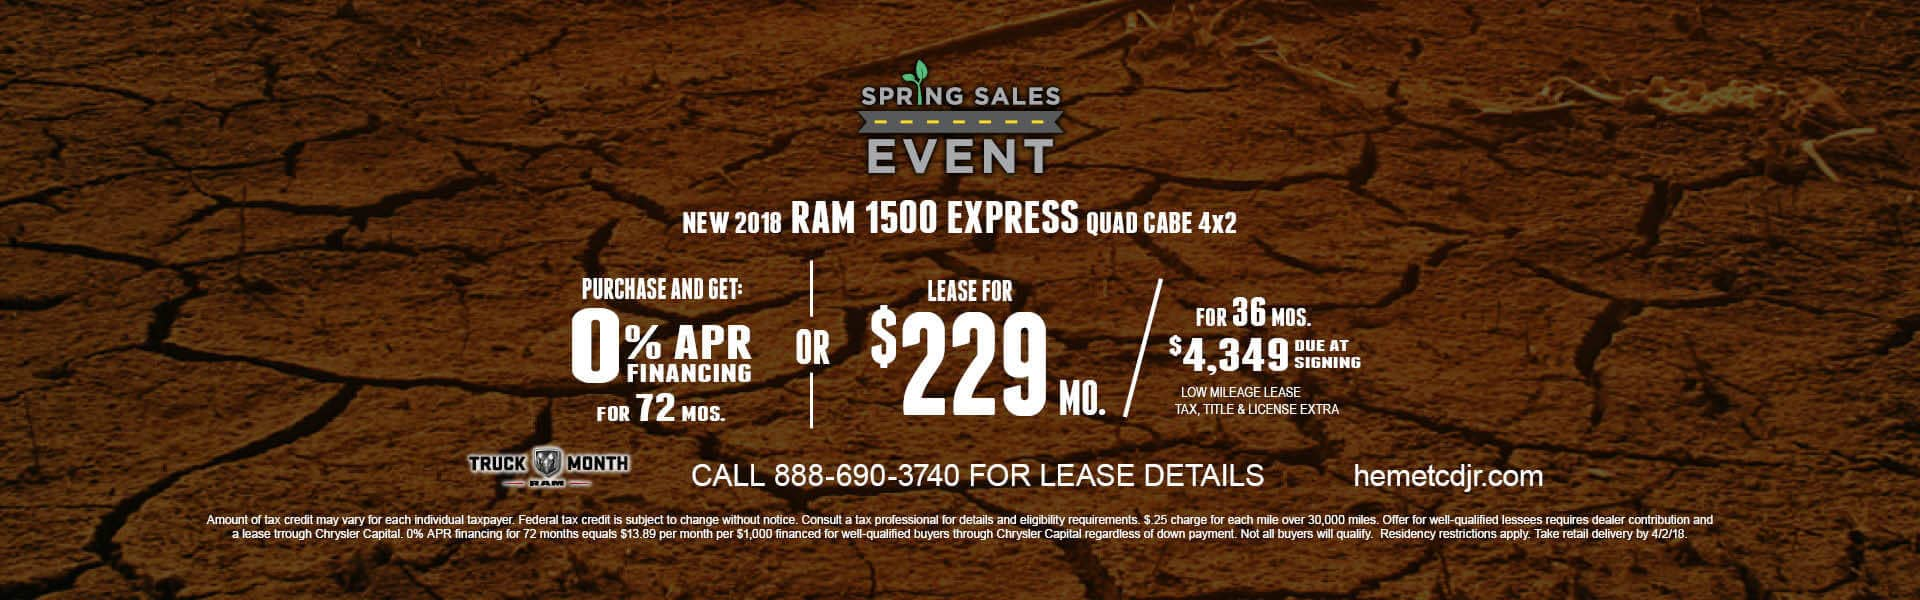 Ram 1500 Express Lease or Purchase